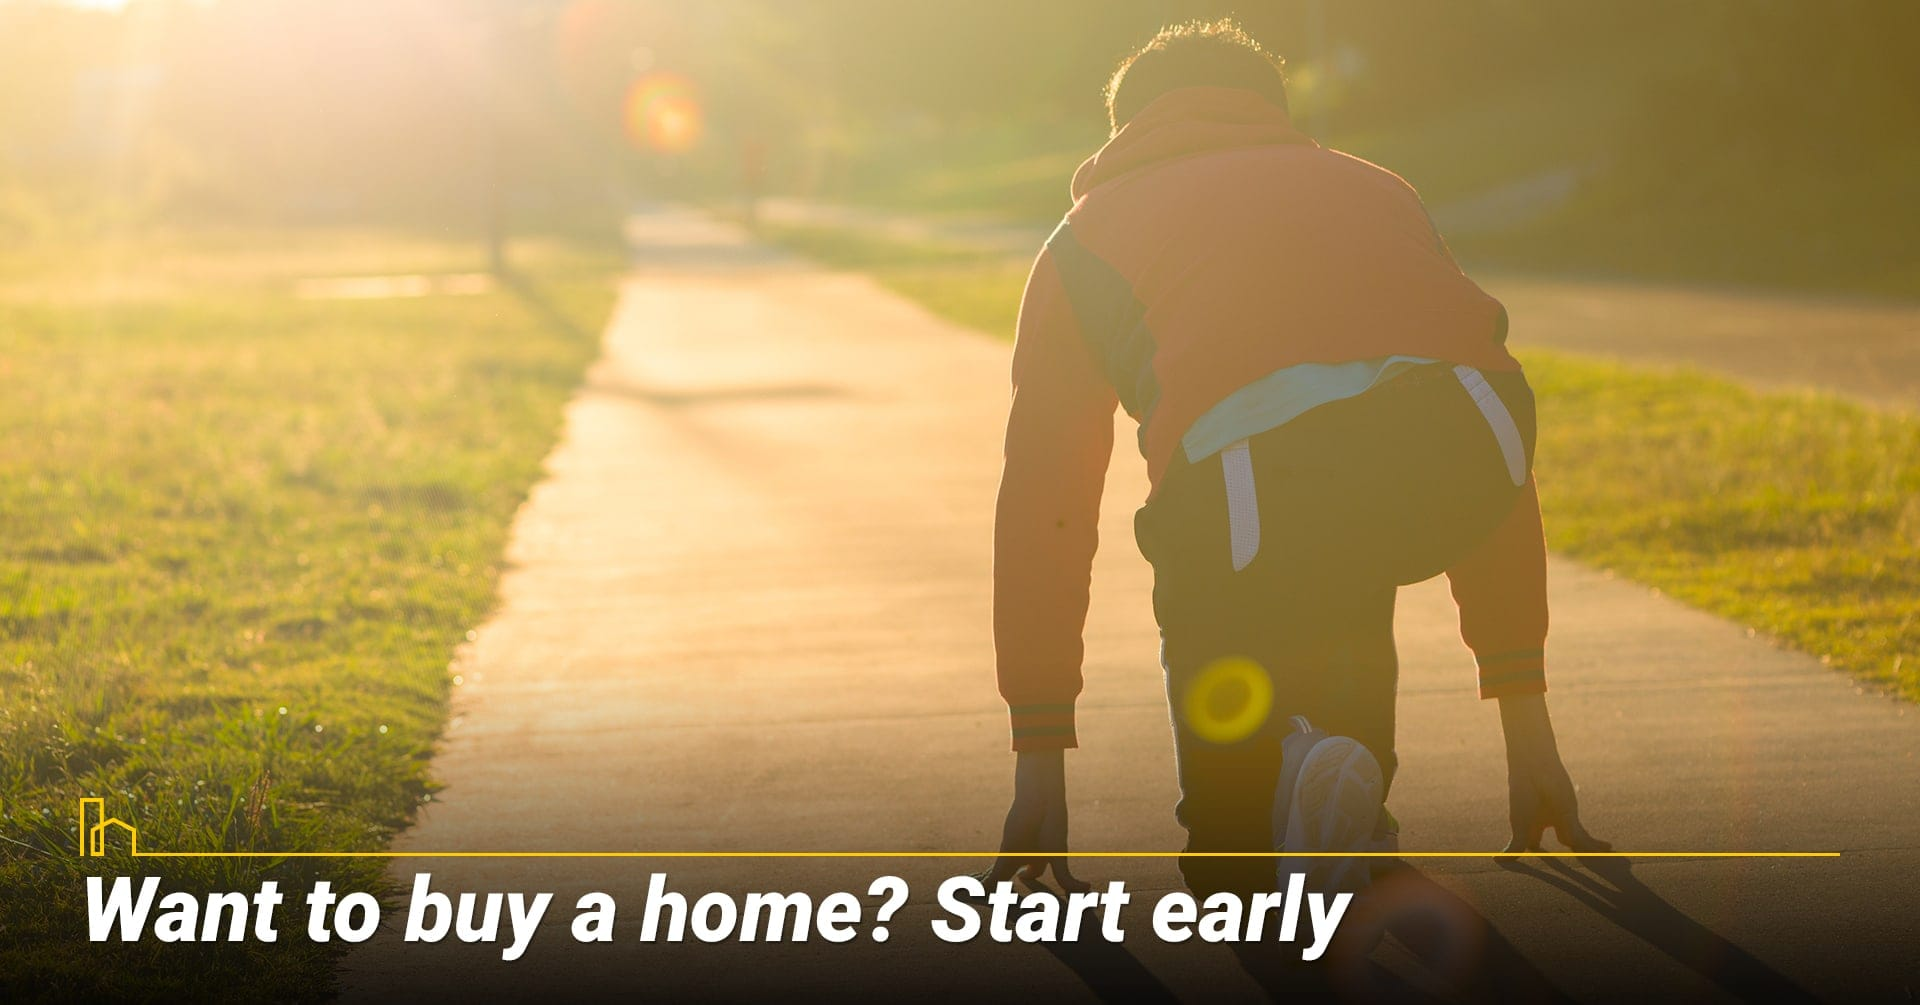 Want to buy a home? Start early, get an early start in the home buying process